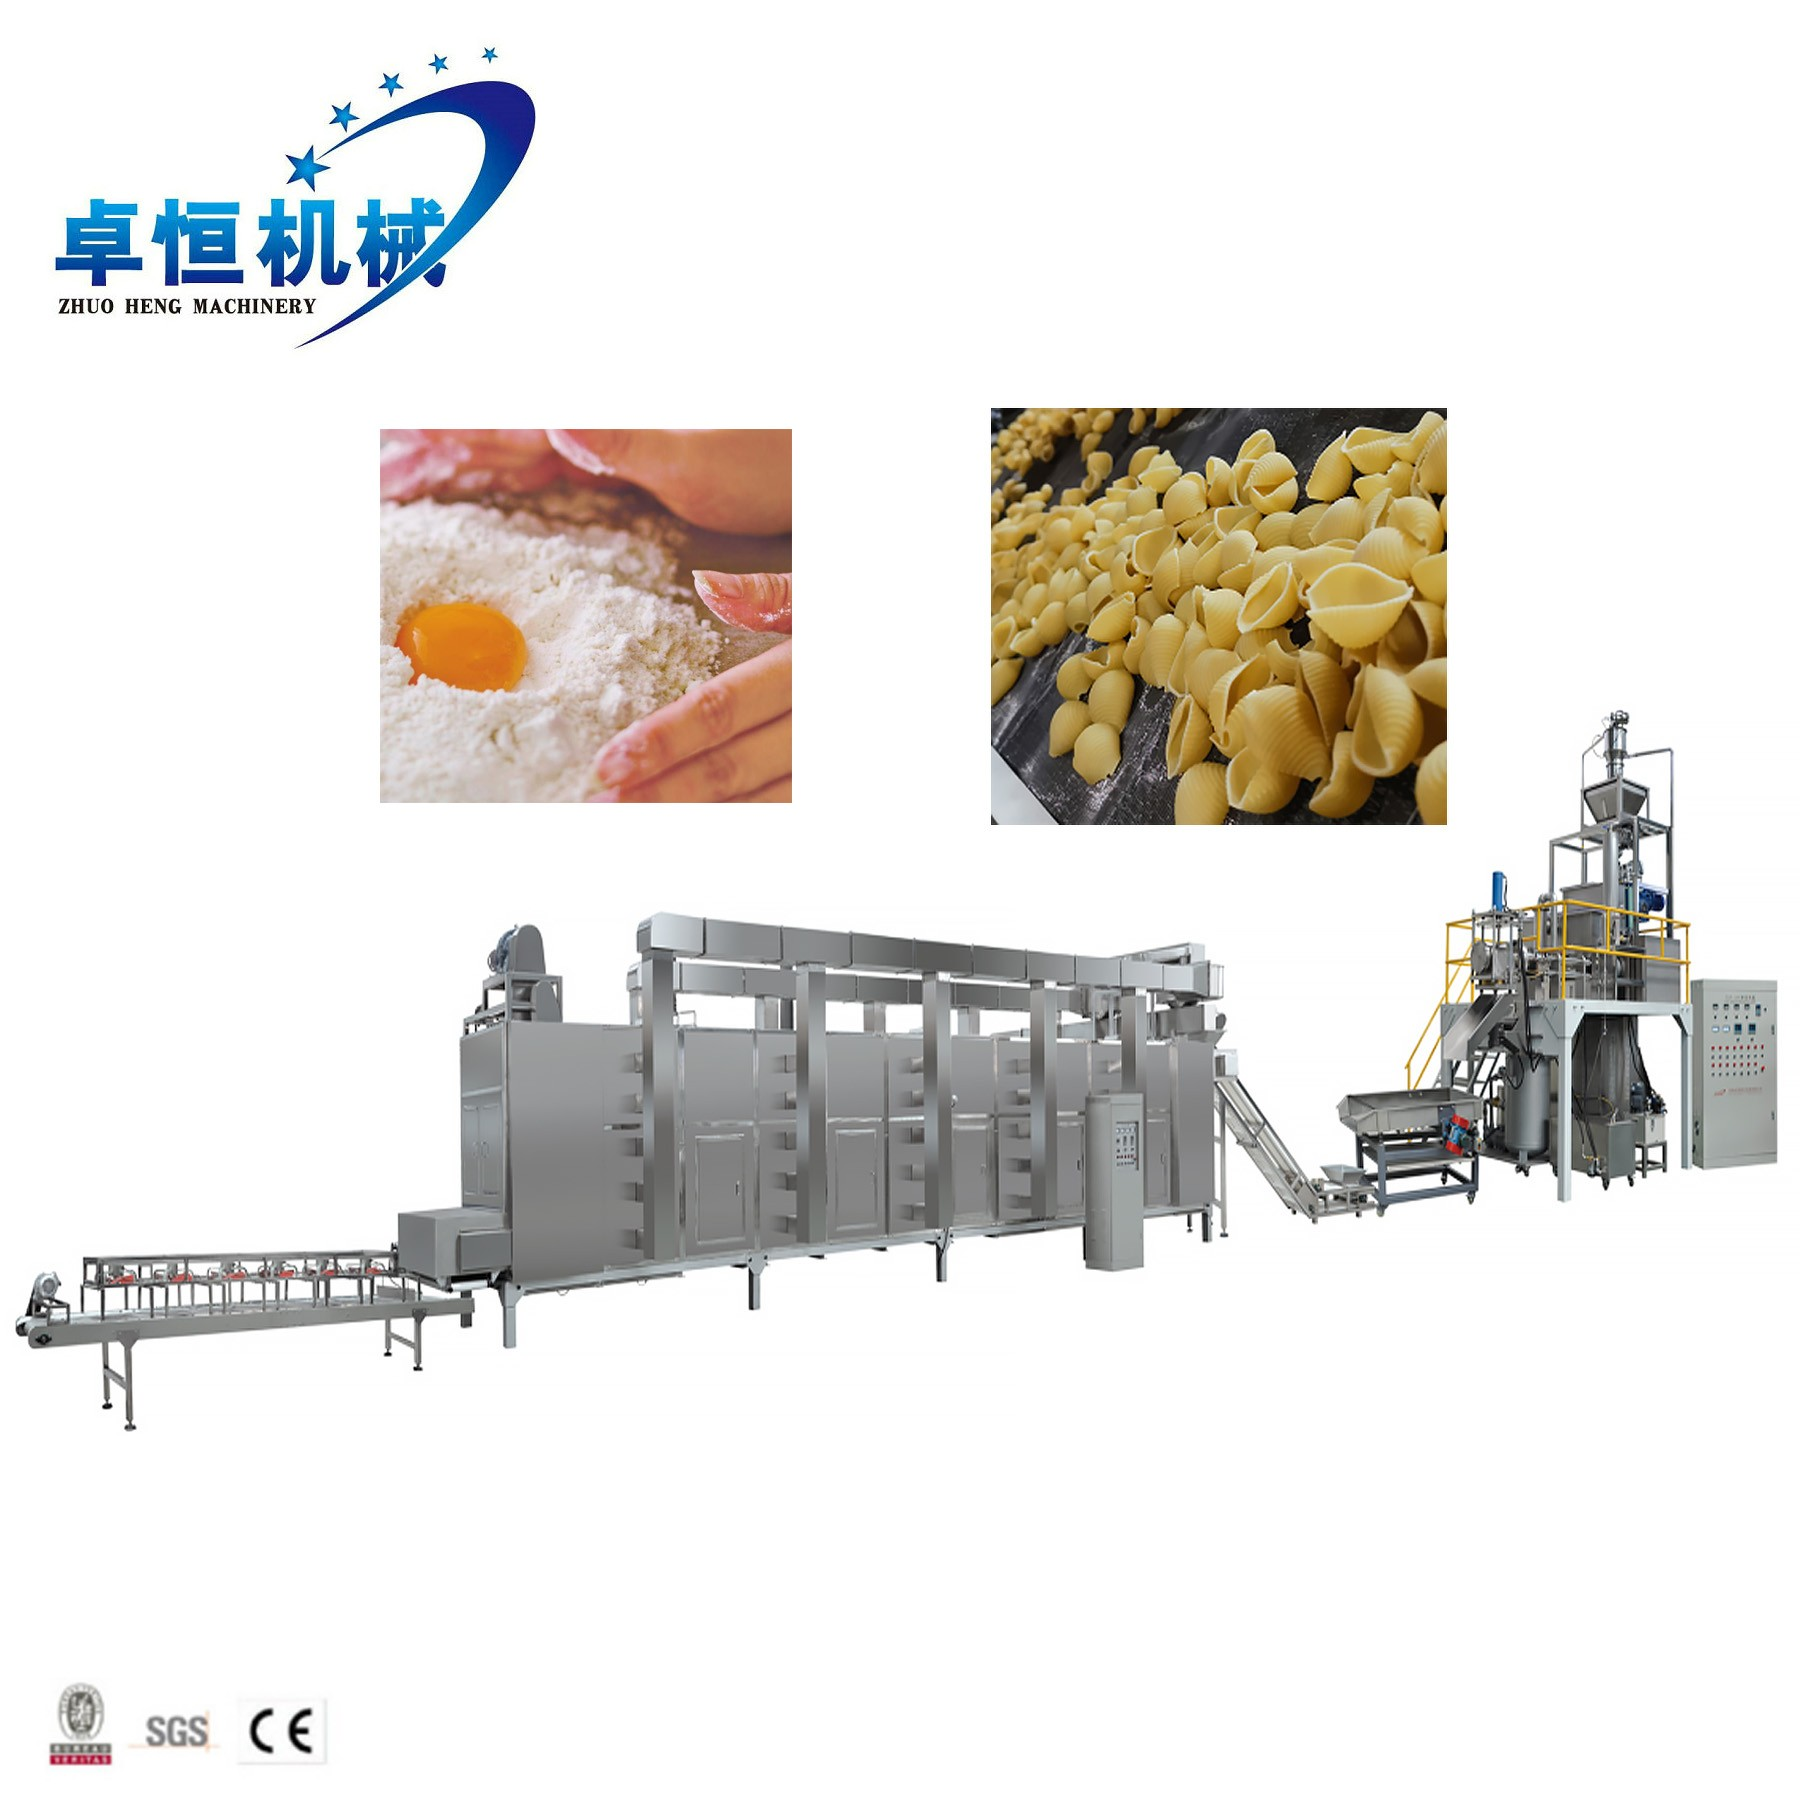 Automatic pasta macaroni making machine Manufacturers, Automatic pasta macaroni making machine Factory, Supply Automatic pasta macaroni making machine